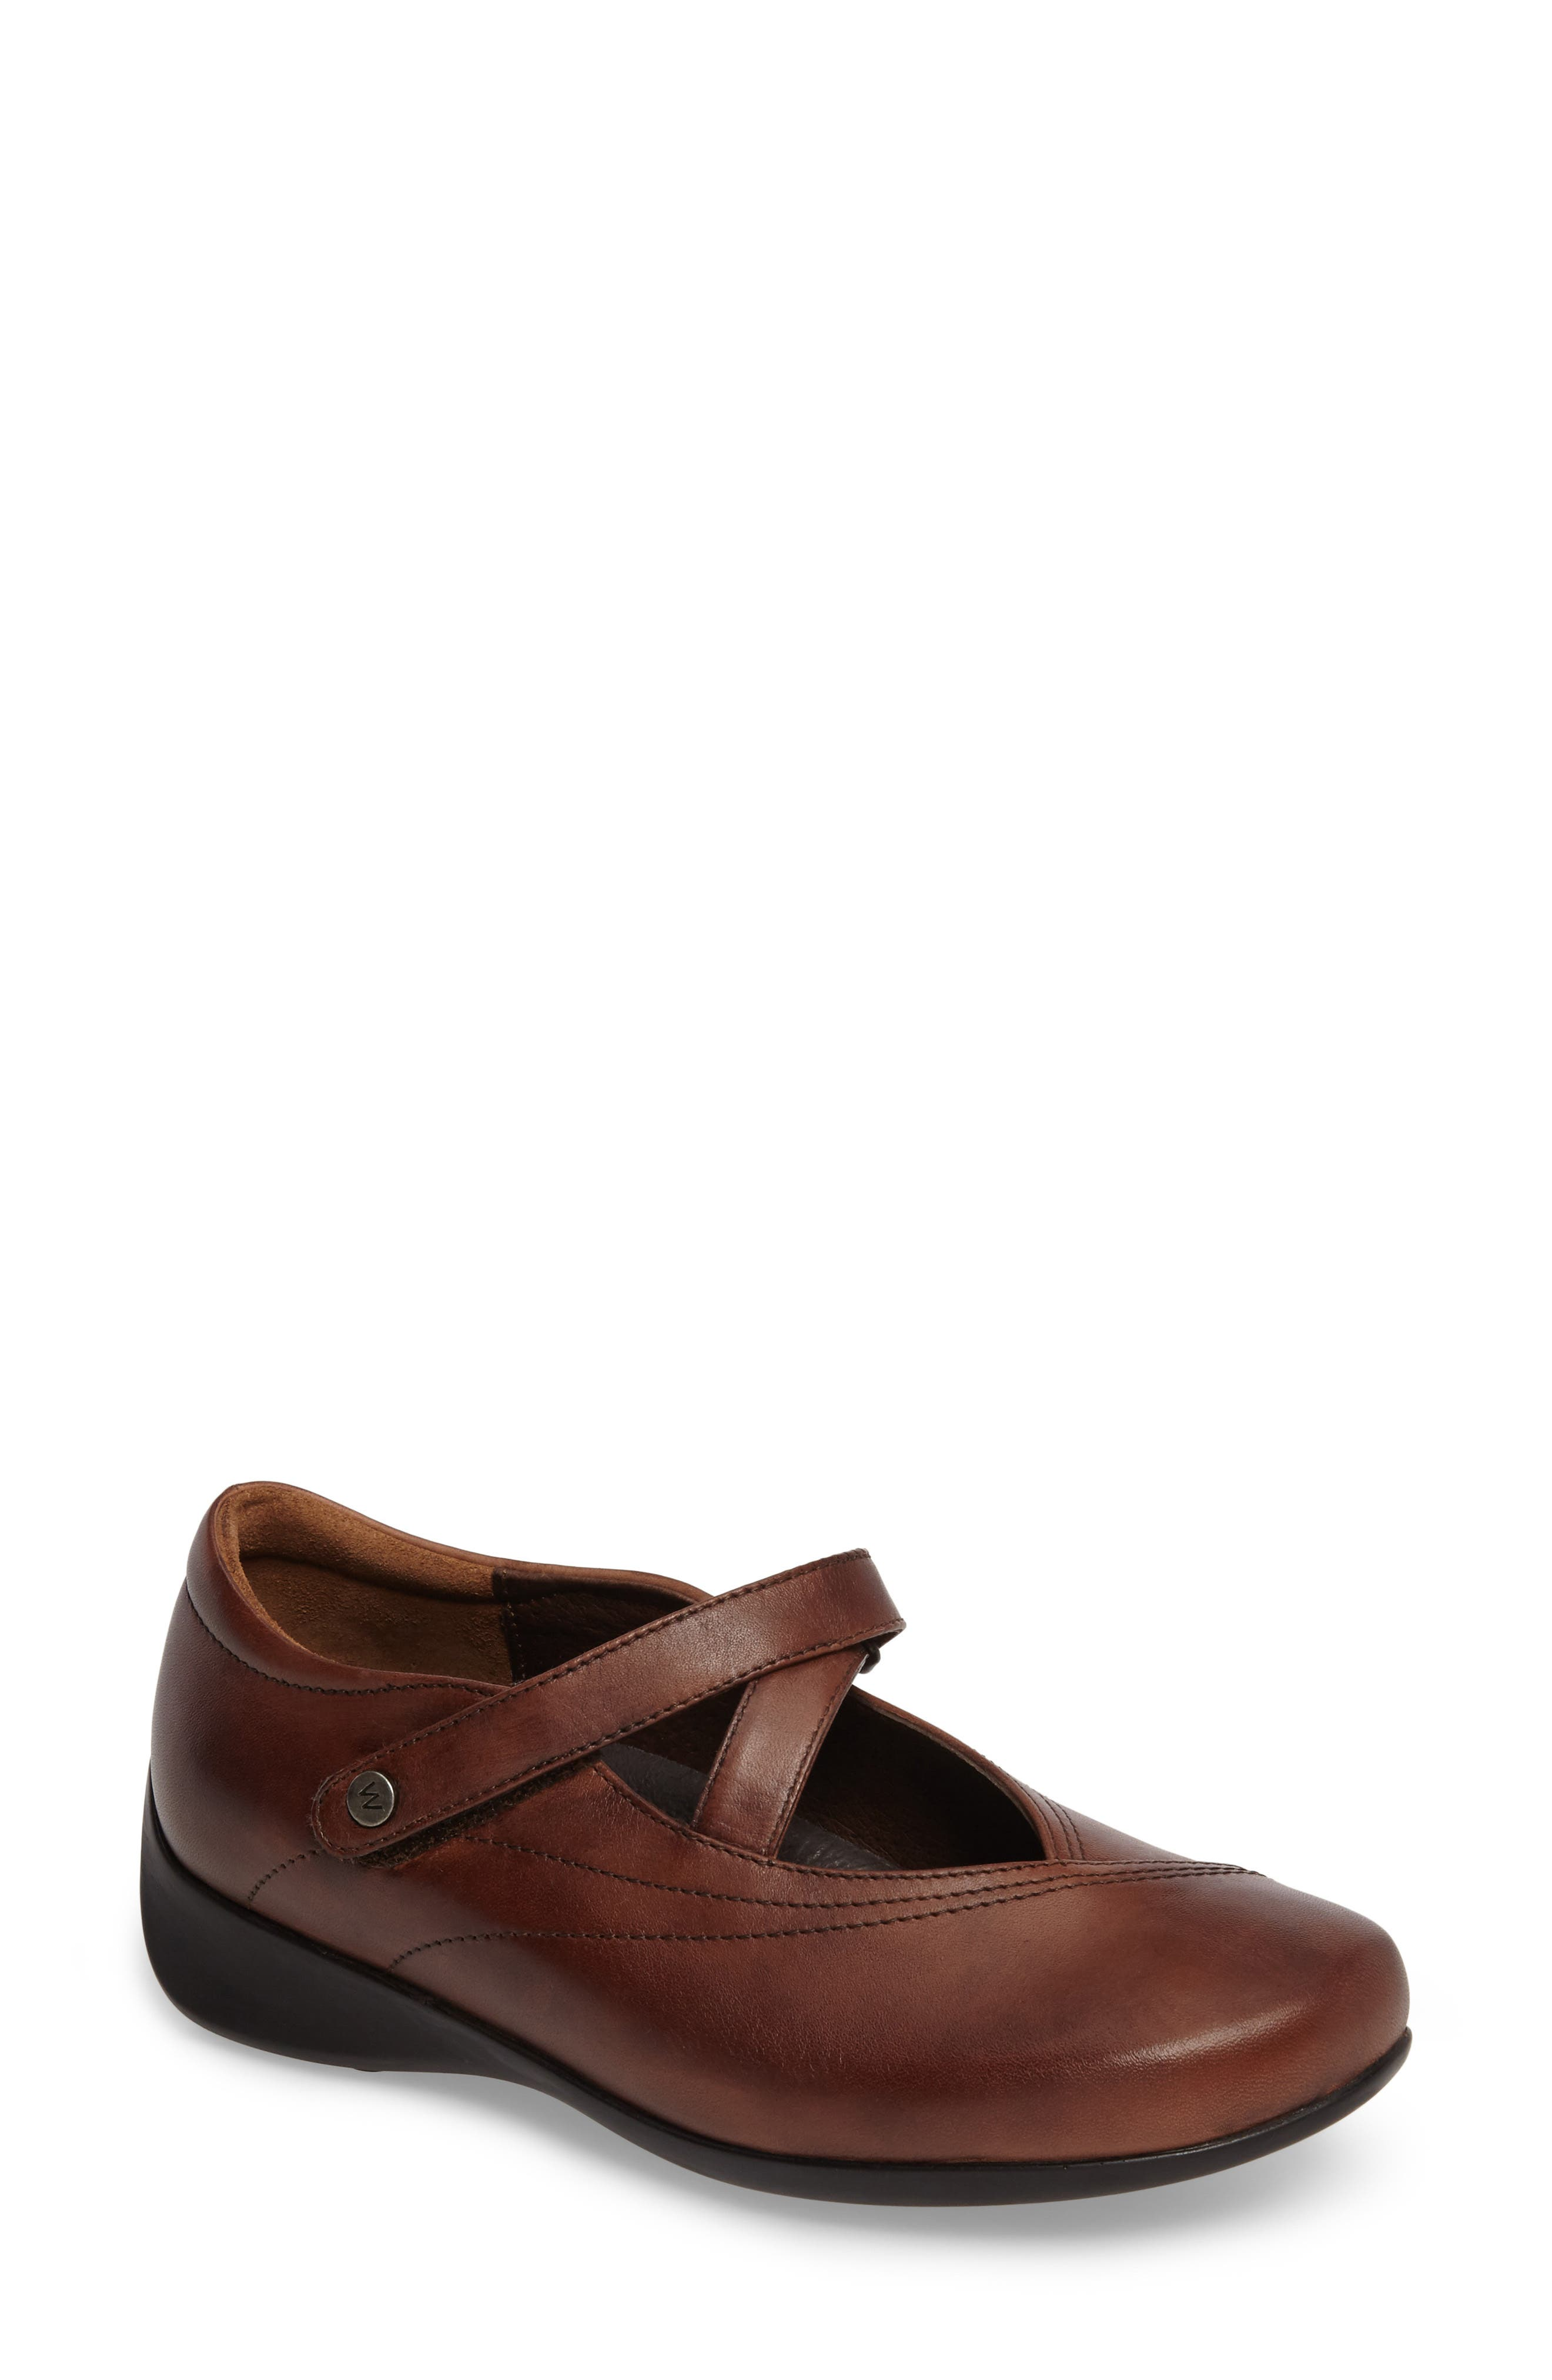 Alternate Image 1 Selected - Wolky Passion Mary Jane Flat (Women)